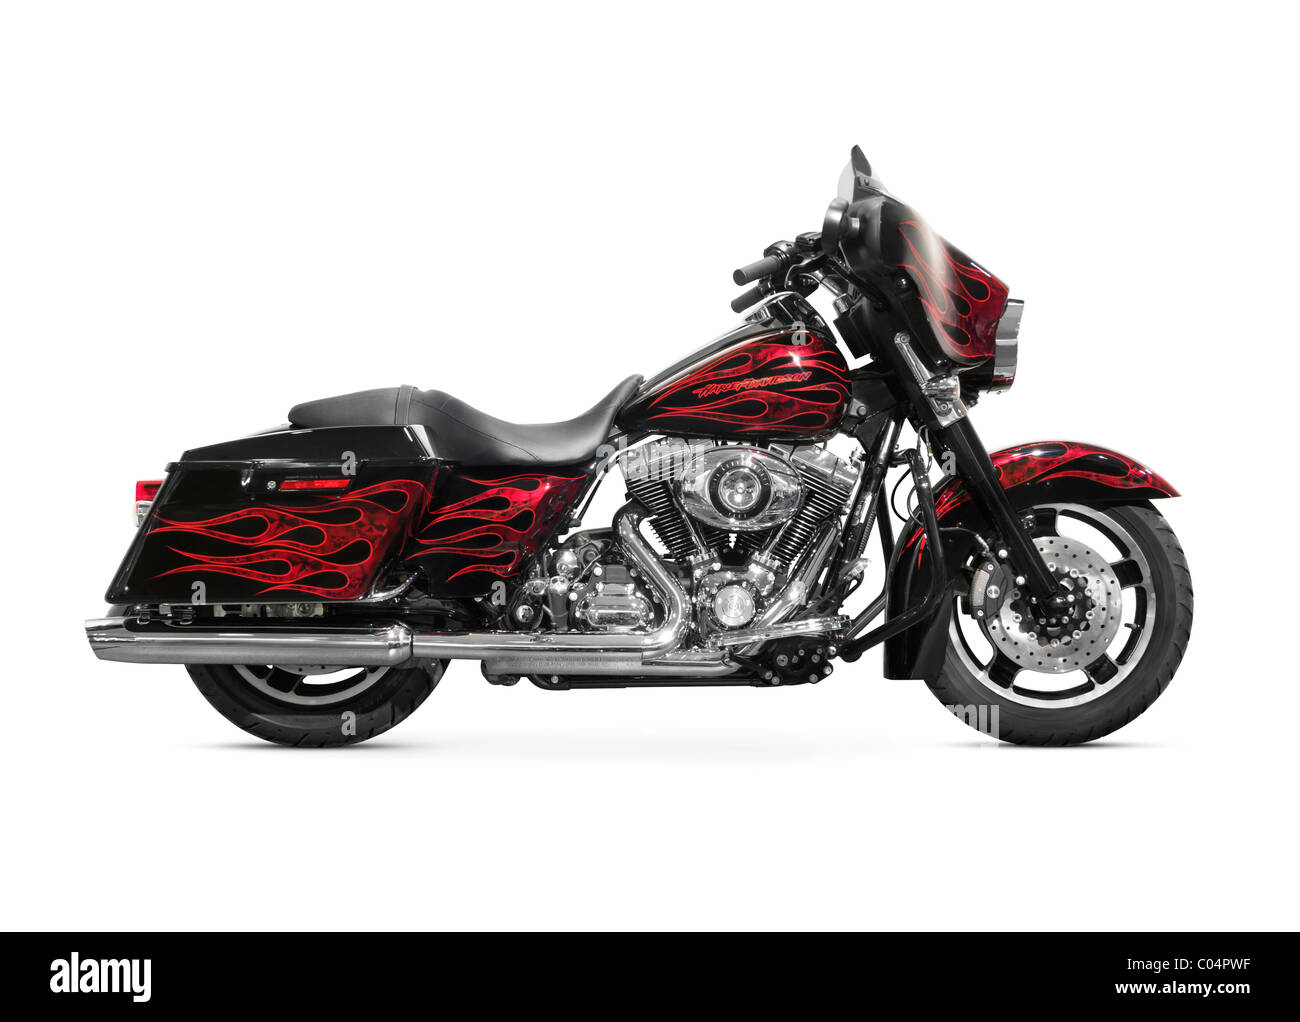 2010 Harley Davidson FLHXSE CVO Street Glide motorcycle isolated on white background - Stock Image